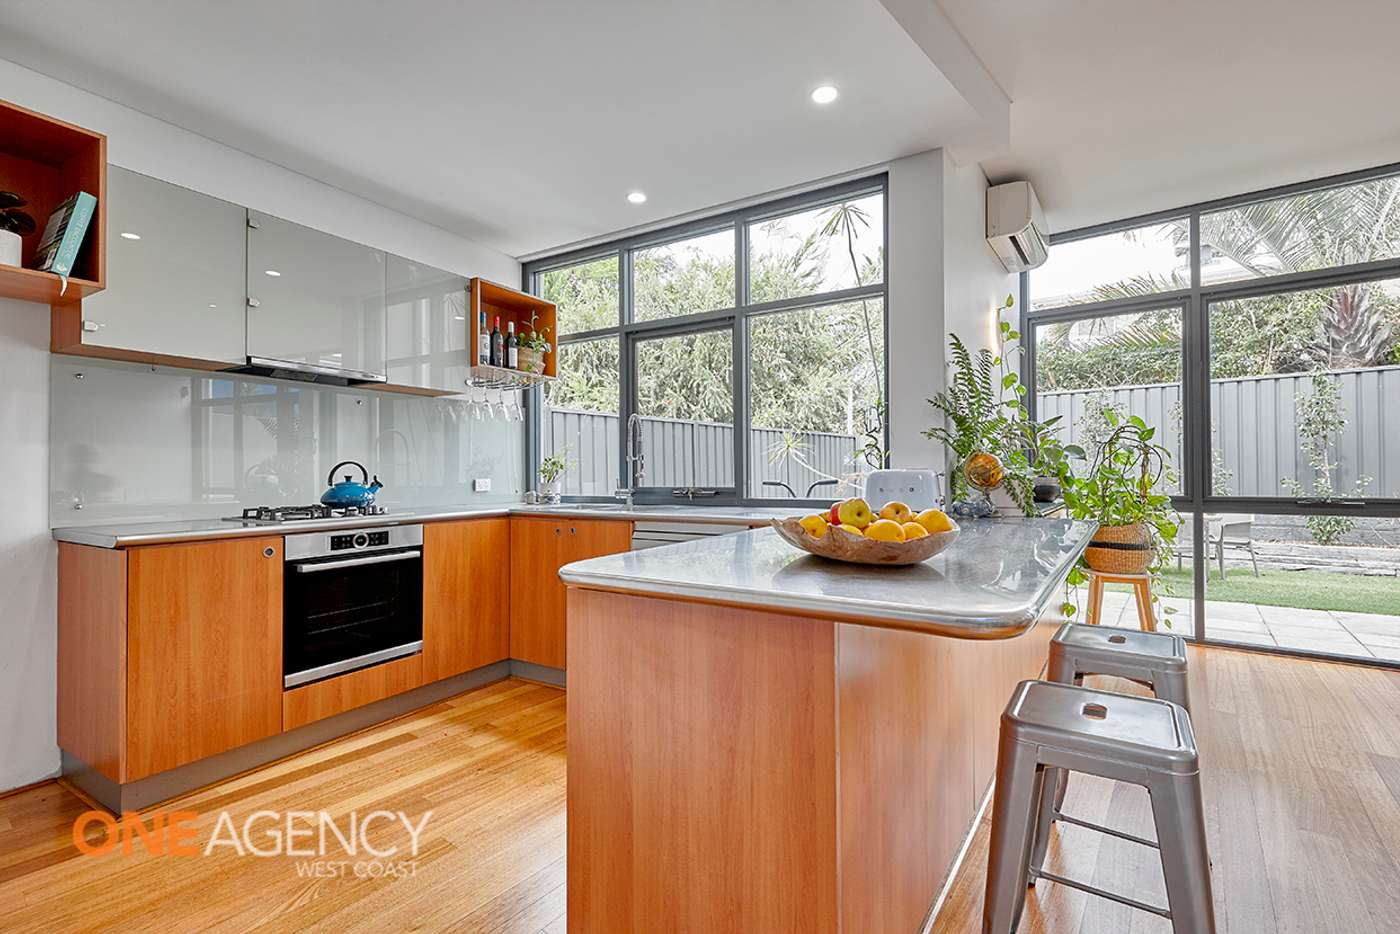 Sixth view of Homely house listing, 35 Woolwich Street, West Leederville WA 6007